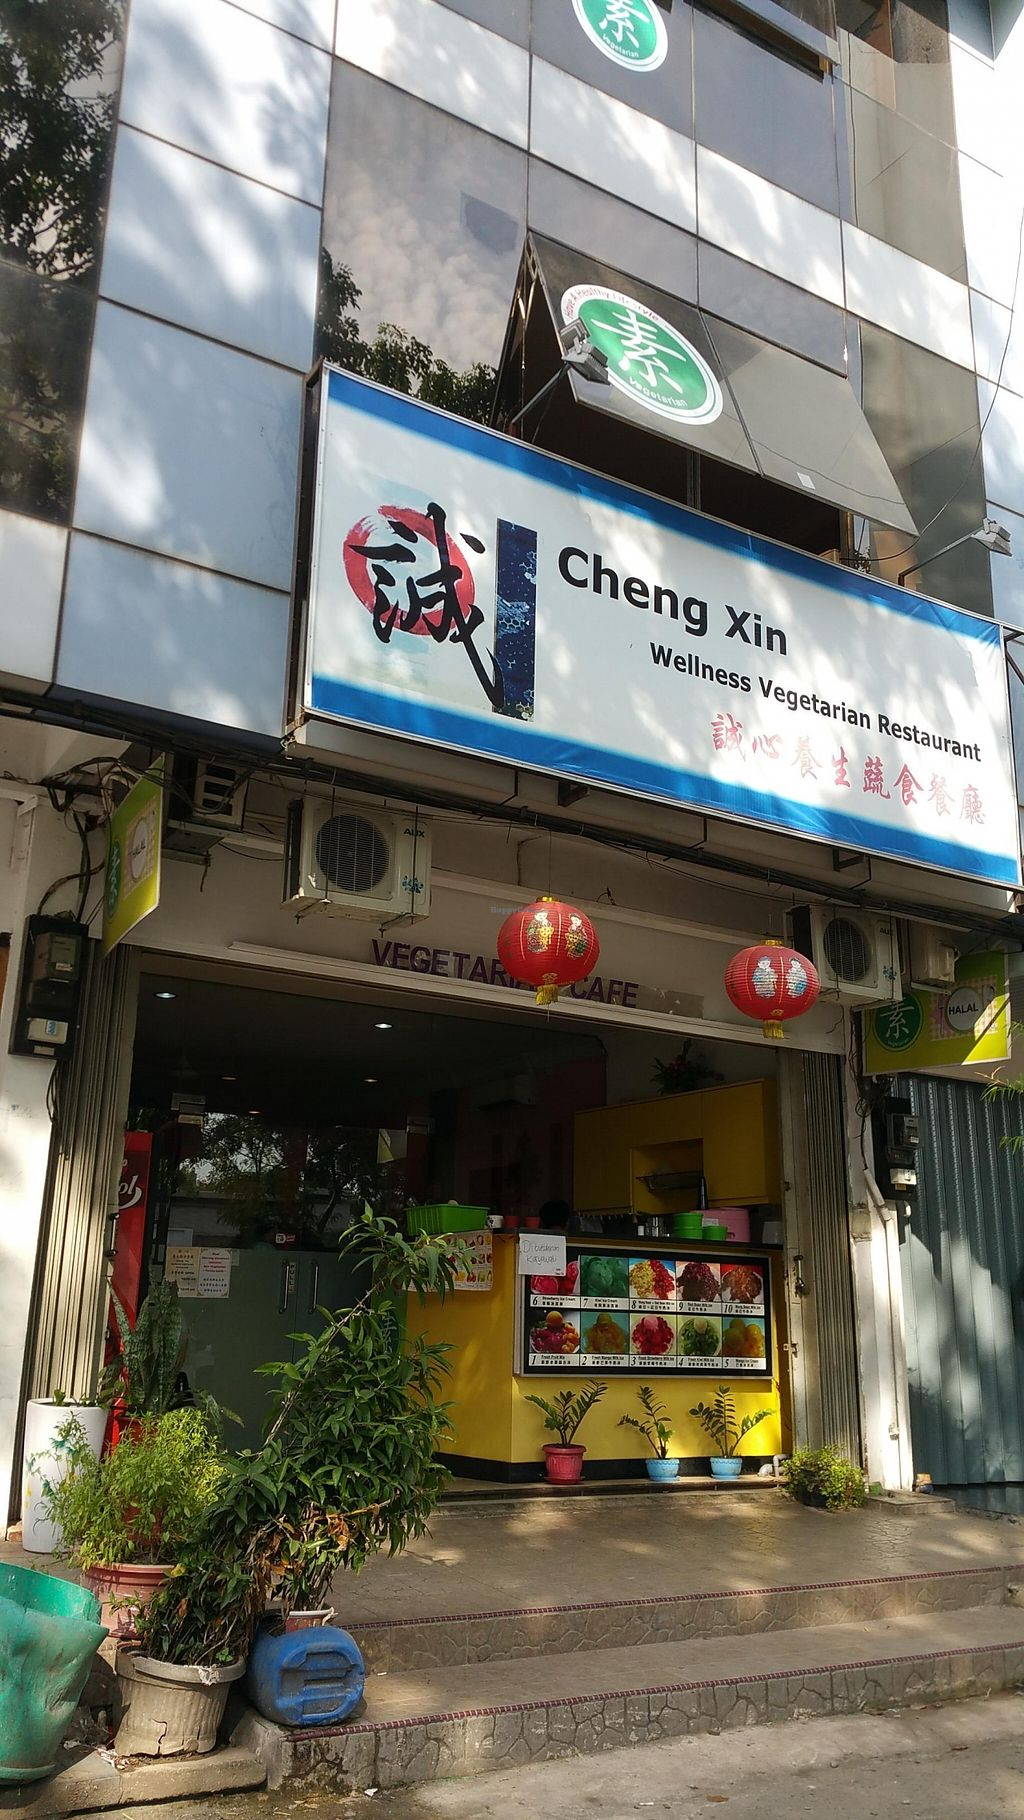 """Photo of Cheng Xin  by <a href=""""/members/profile/terrenceleong"""">terrenceleong</a> <br/> December 20, 2015  - <a href='/contact/abuse/image/59167/129179'>Report</a>"""